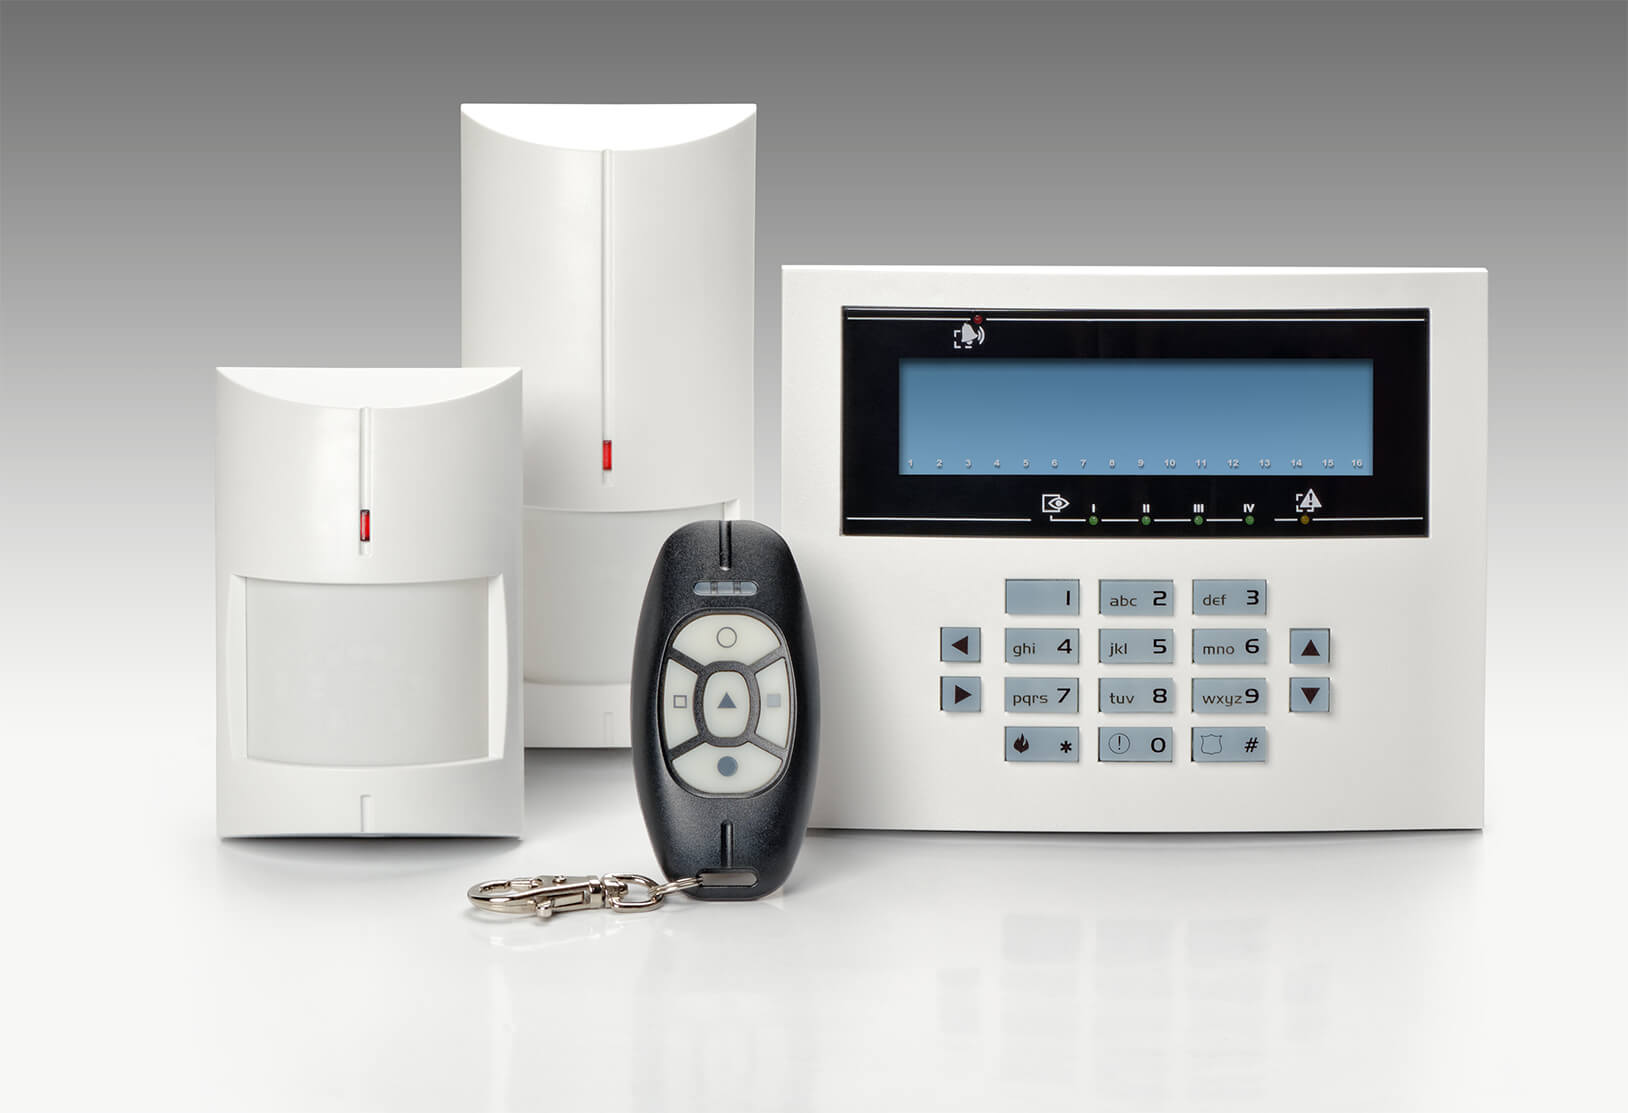 Commercial Burglar Alarms For Business in Battersea SW18  - Local Battersea SW18 burglar alarm company.Call 02078872244 - Dedicated to Safety & Security. Companies, shops and homes ..